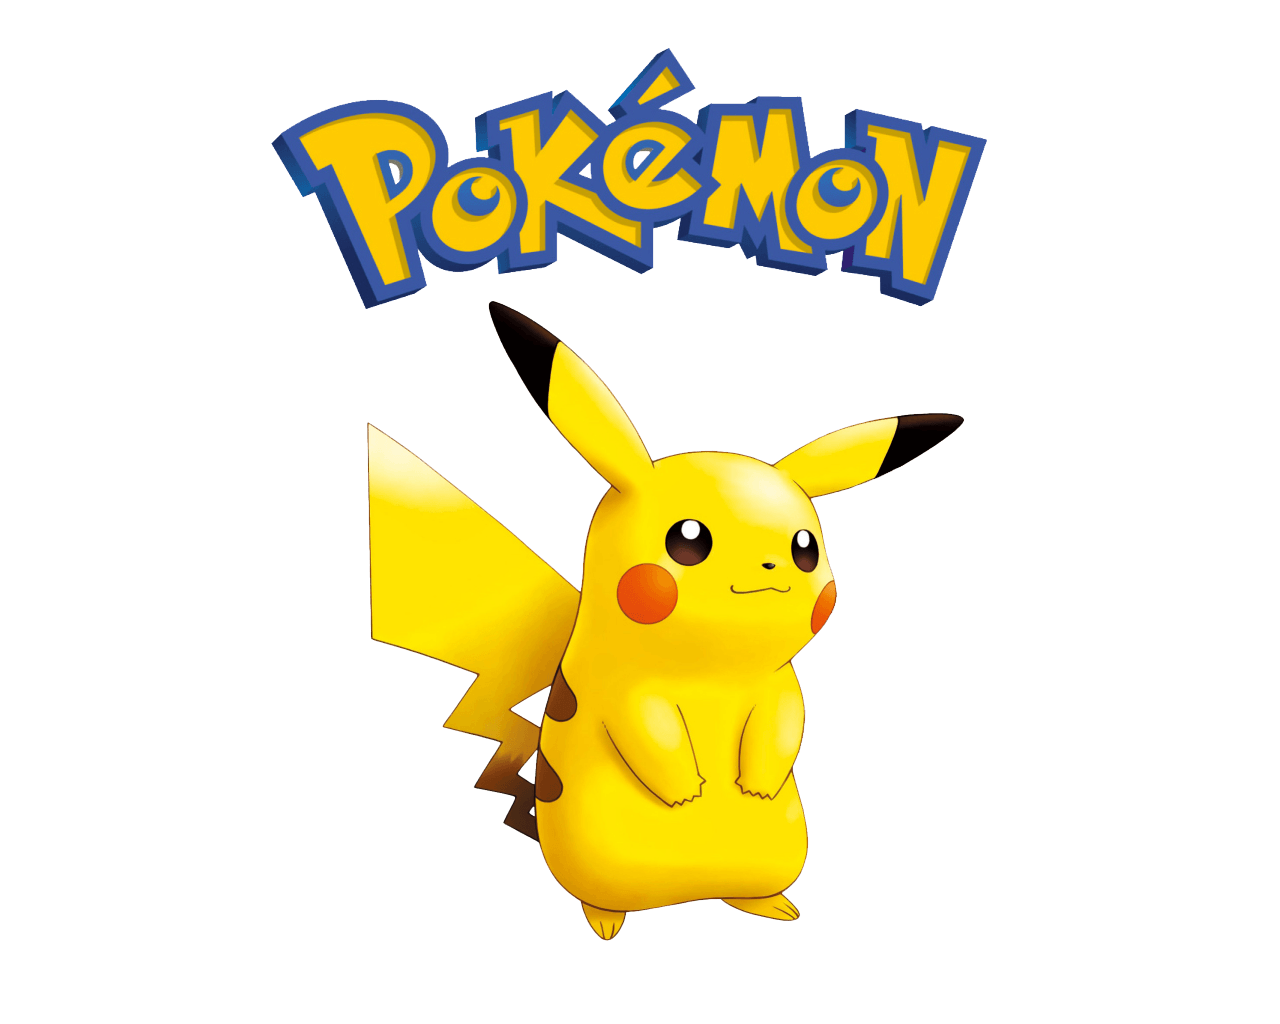 Pokmon Pikachu Wallpapers Wallpaper Cave